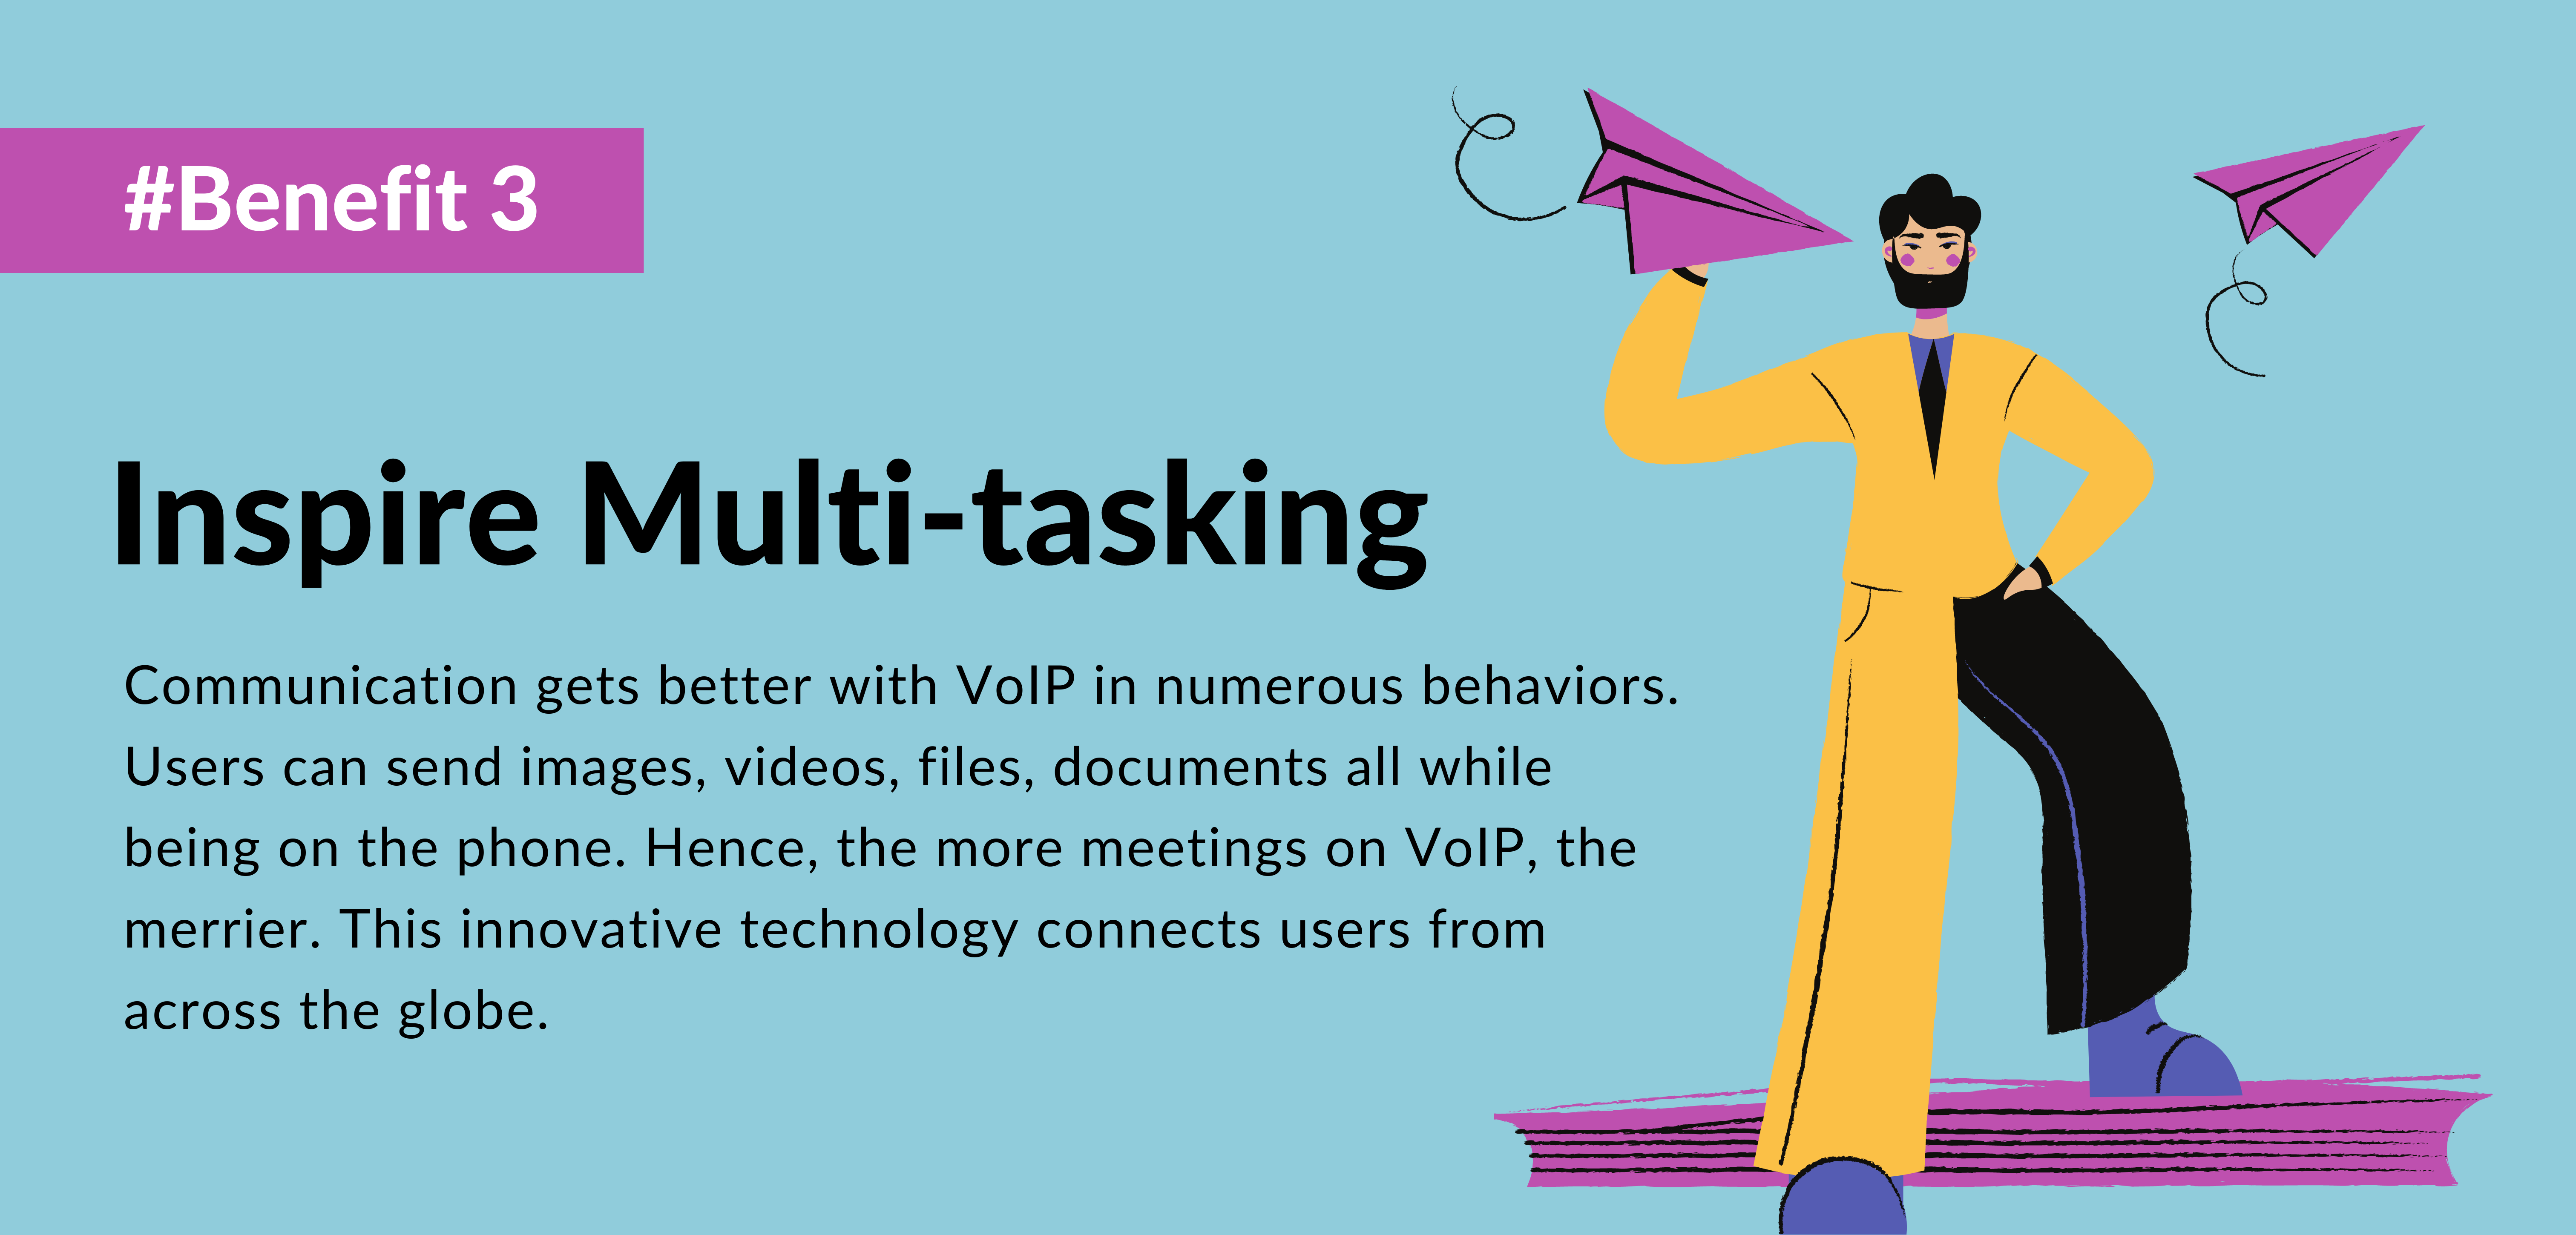 third benefit of using voip is Multi-tasking- telecloud